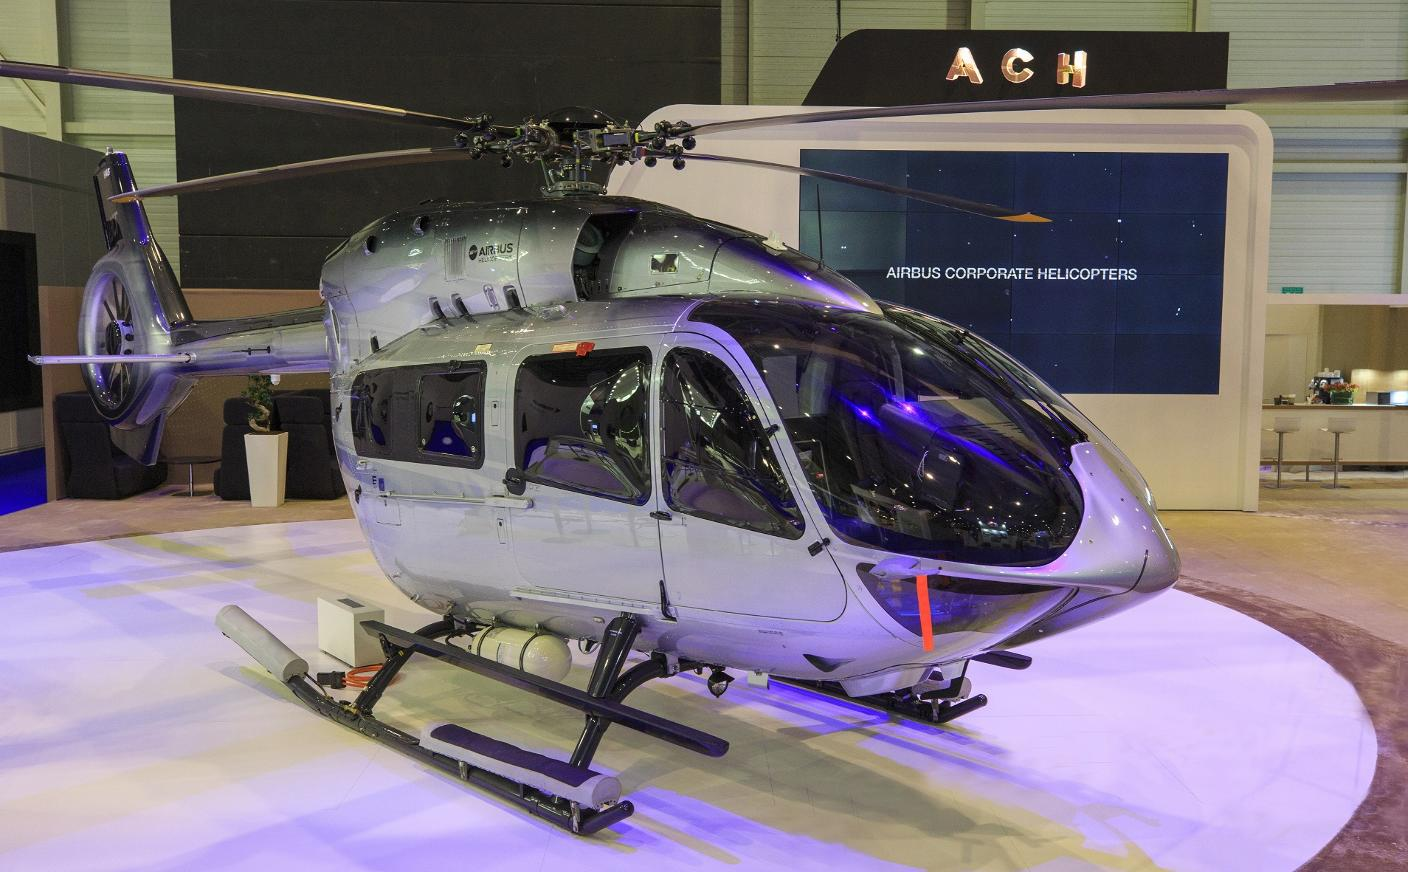 EBACE 2017: Airbus adds helicopters to Corporate offering